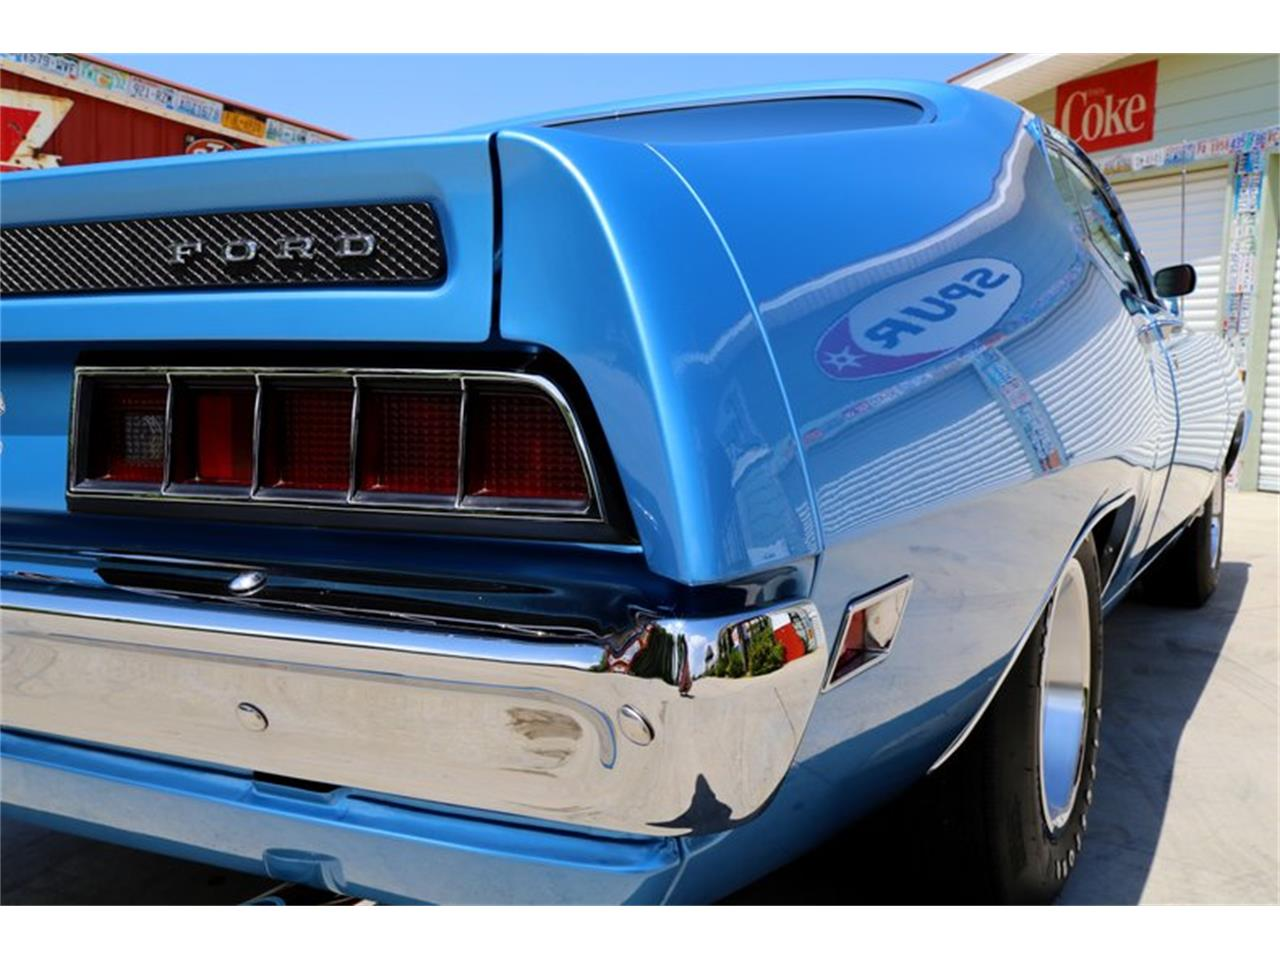 Large Picture of '70 Ford Torino located in Tennessee Offered by Smoky Mountain Traders - N6PC